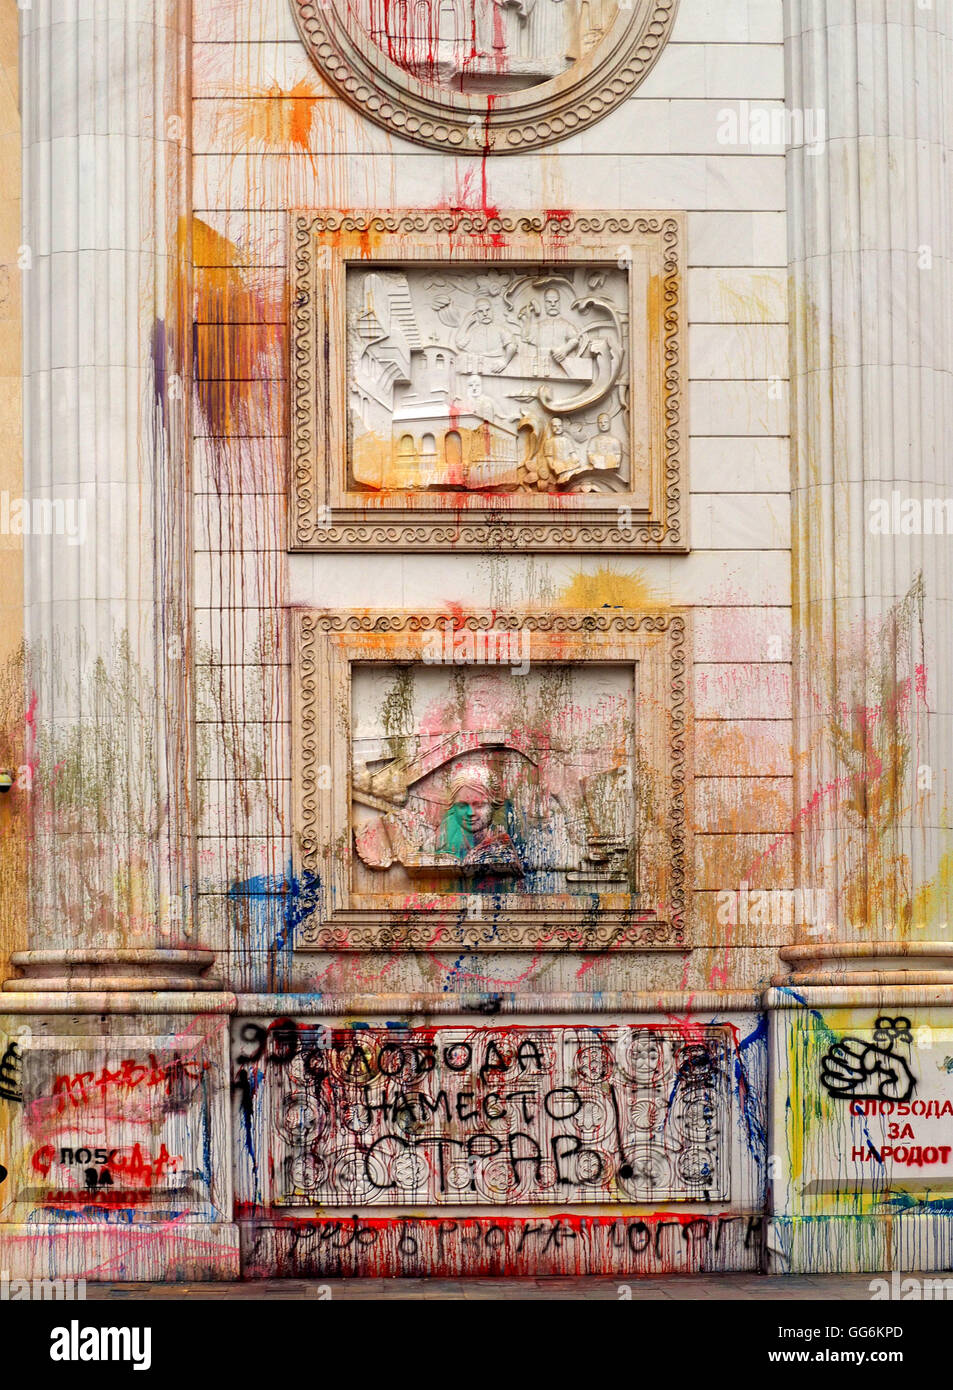 Public building defaced by graffiti and paintbombs in Skopje Macedonia in people's peaceful protest against - Stock Image